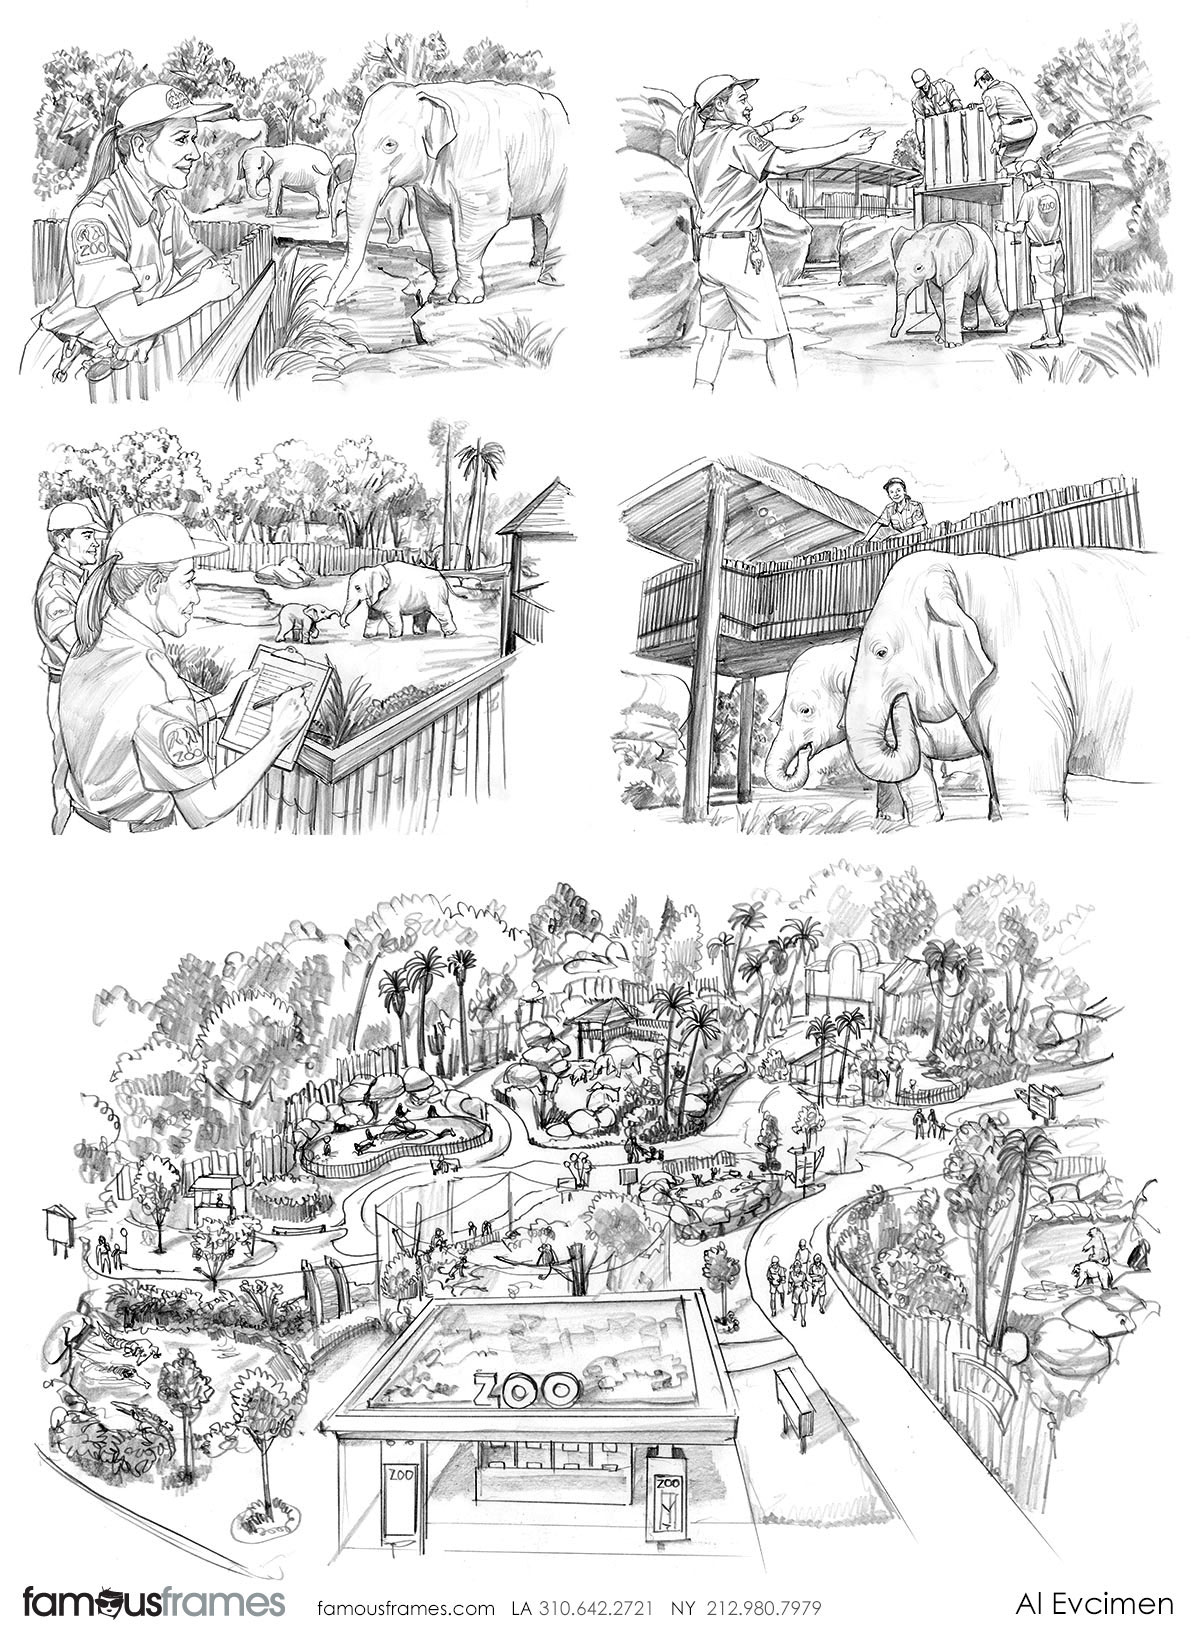 Al Evcimen's People - B&W Tone storyboard art (Image #7229_113_1483489301)